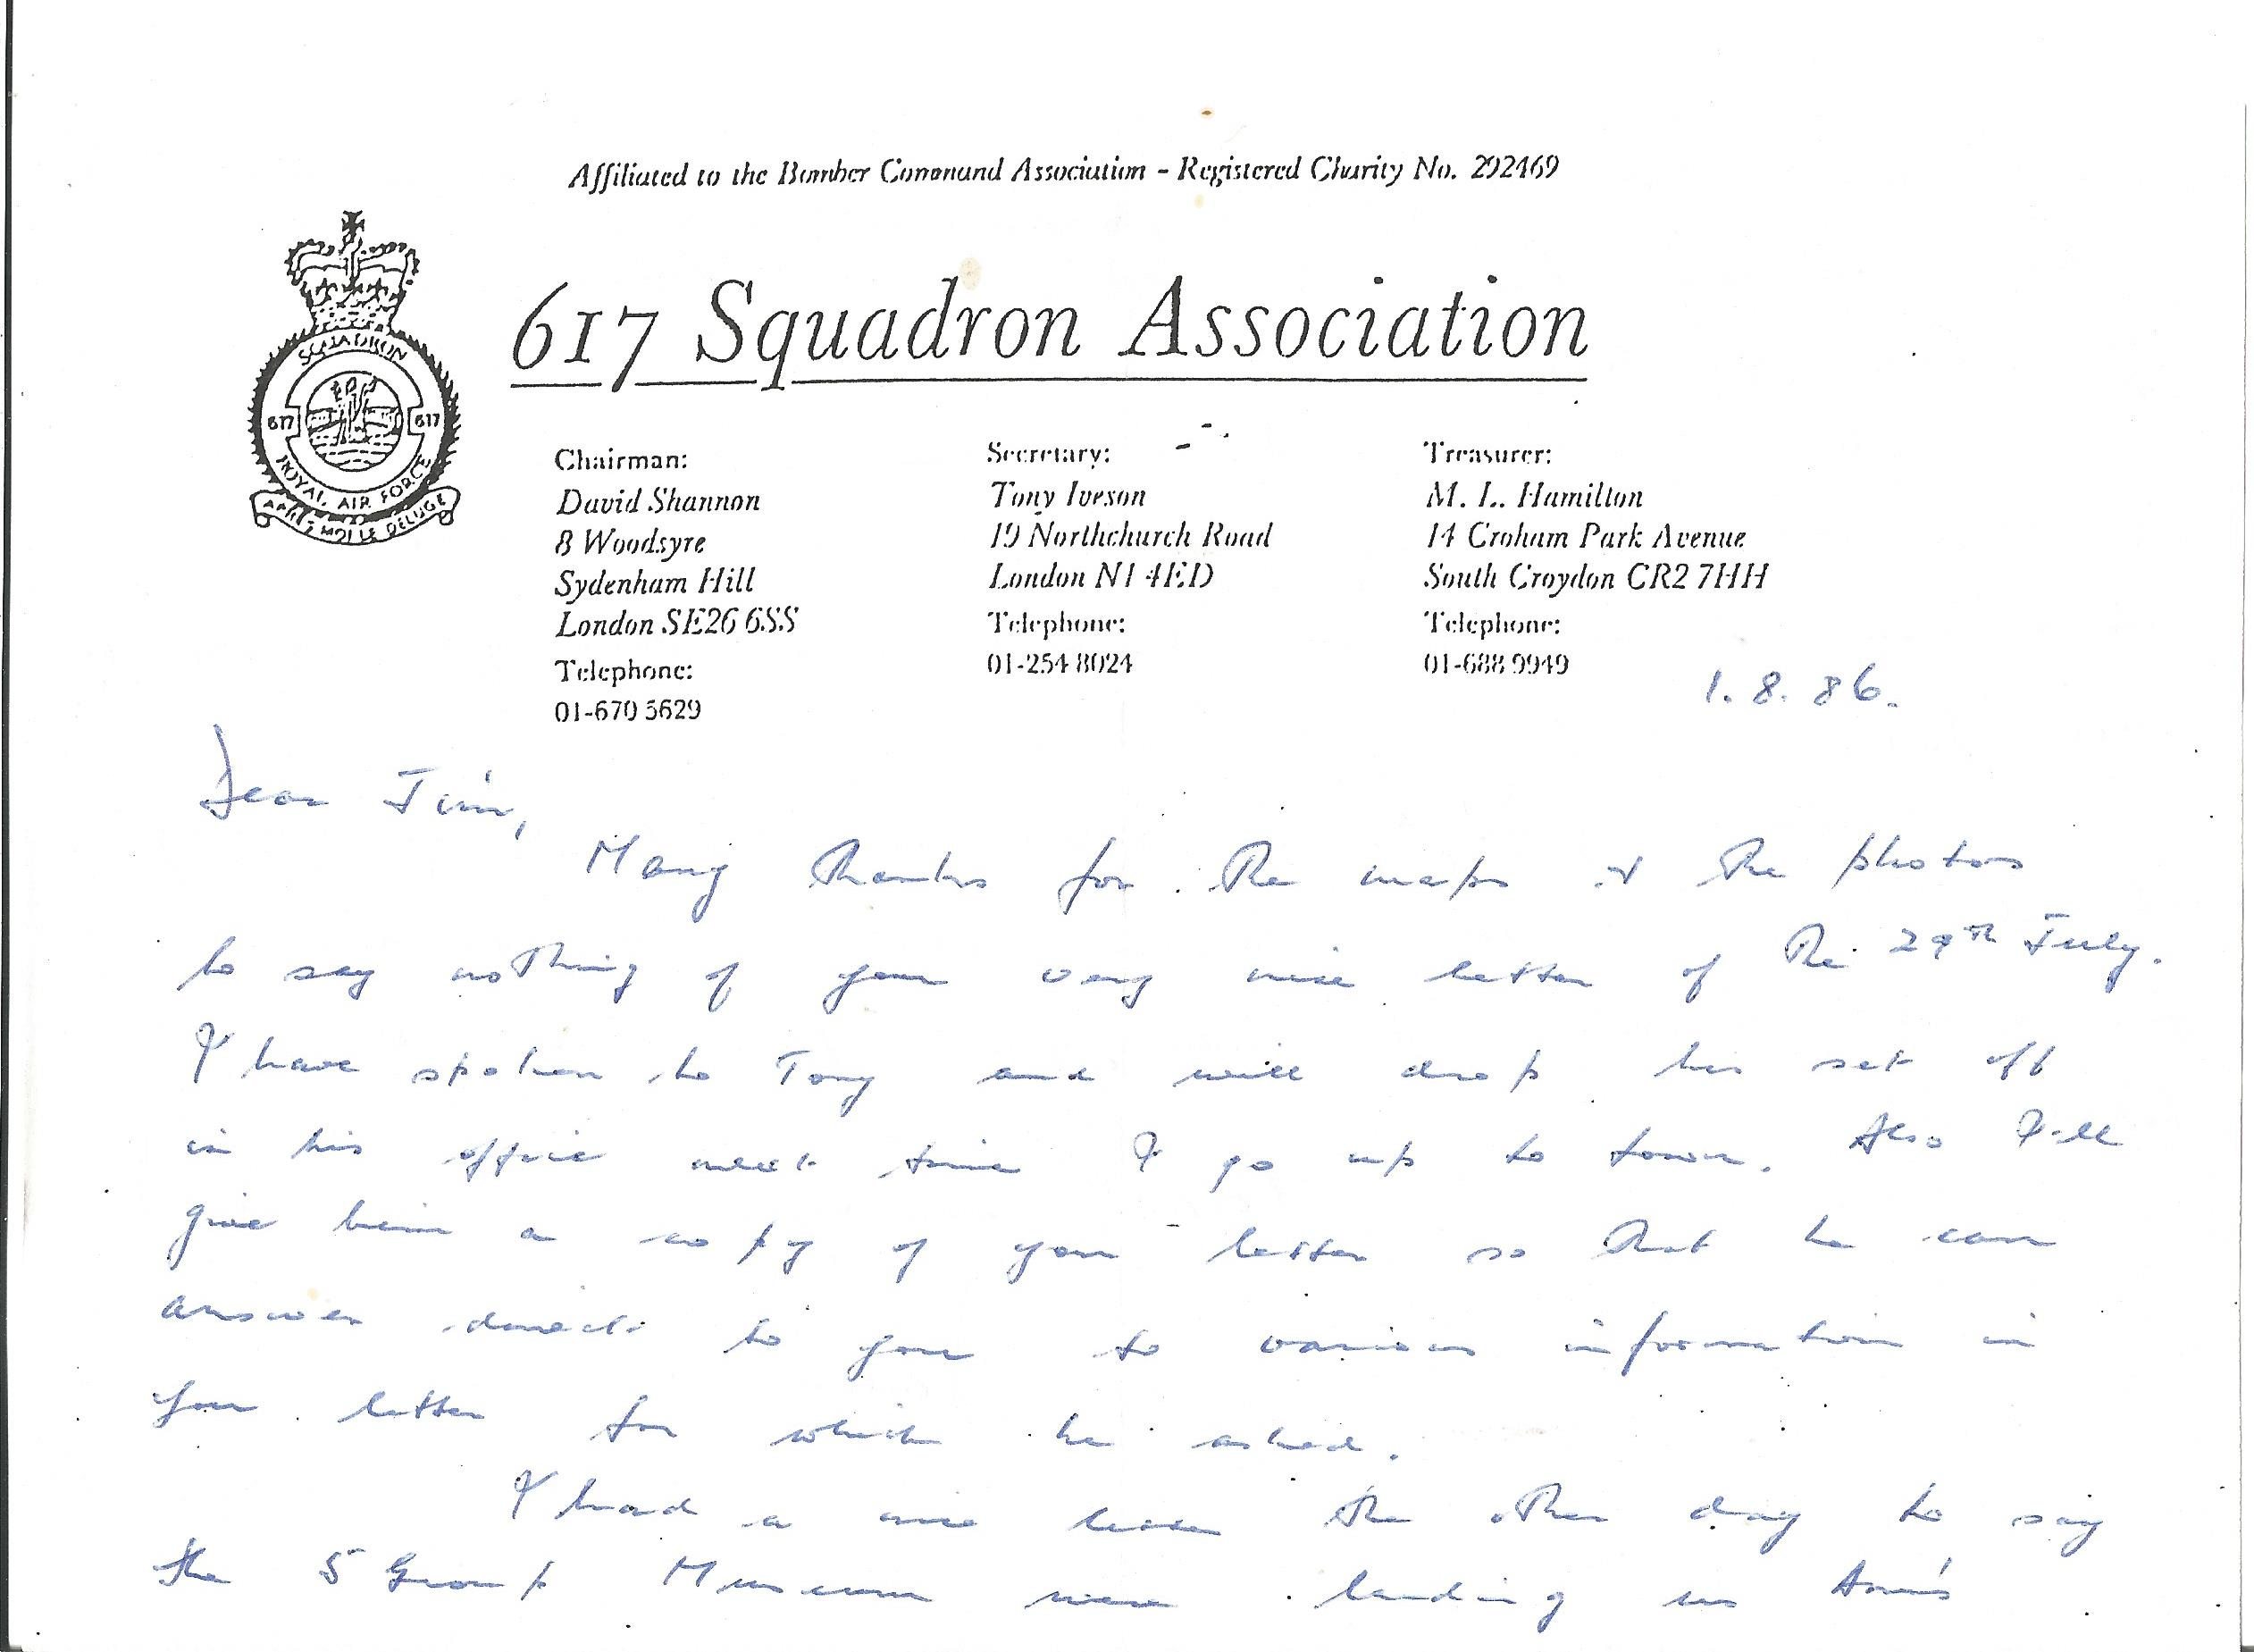 Lot 25 - David Shannon 617 Sqn WW2 Dambuster raid pilot hand written letter on 617 Sqn Association notepaper.